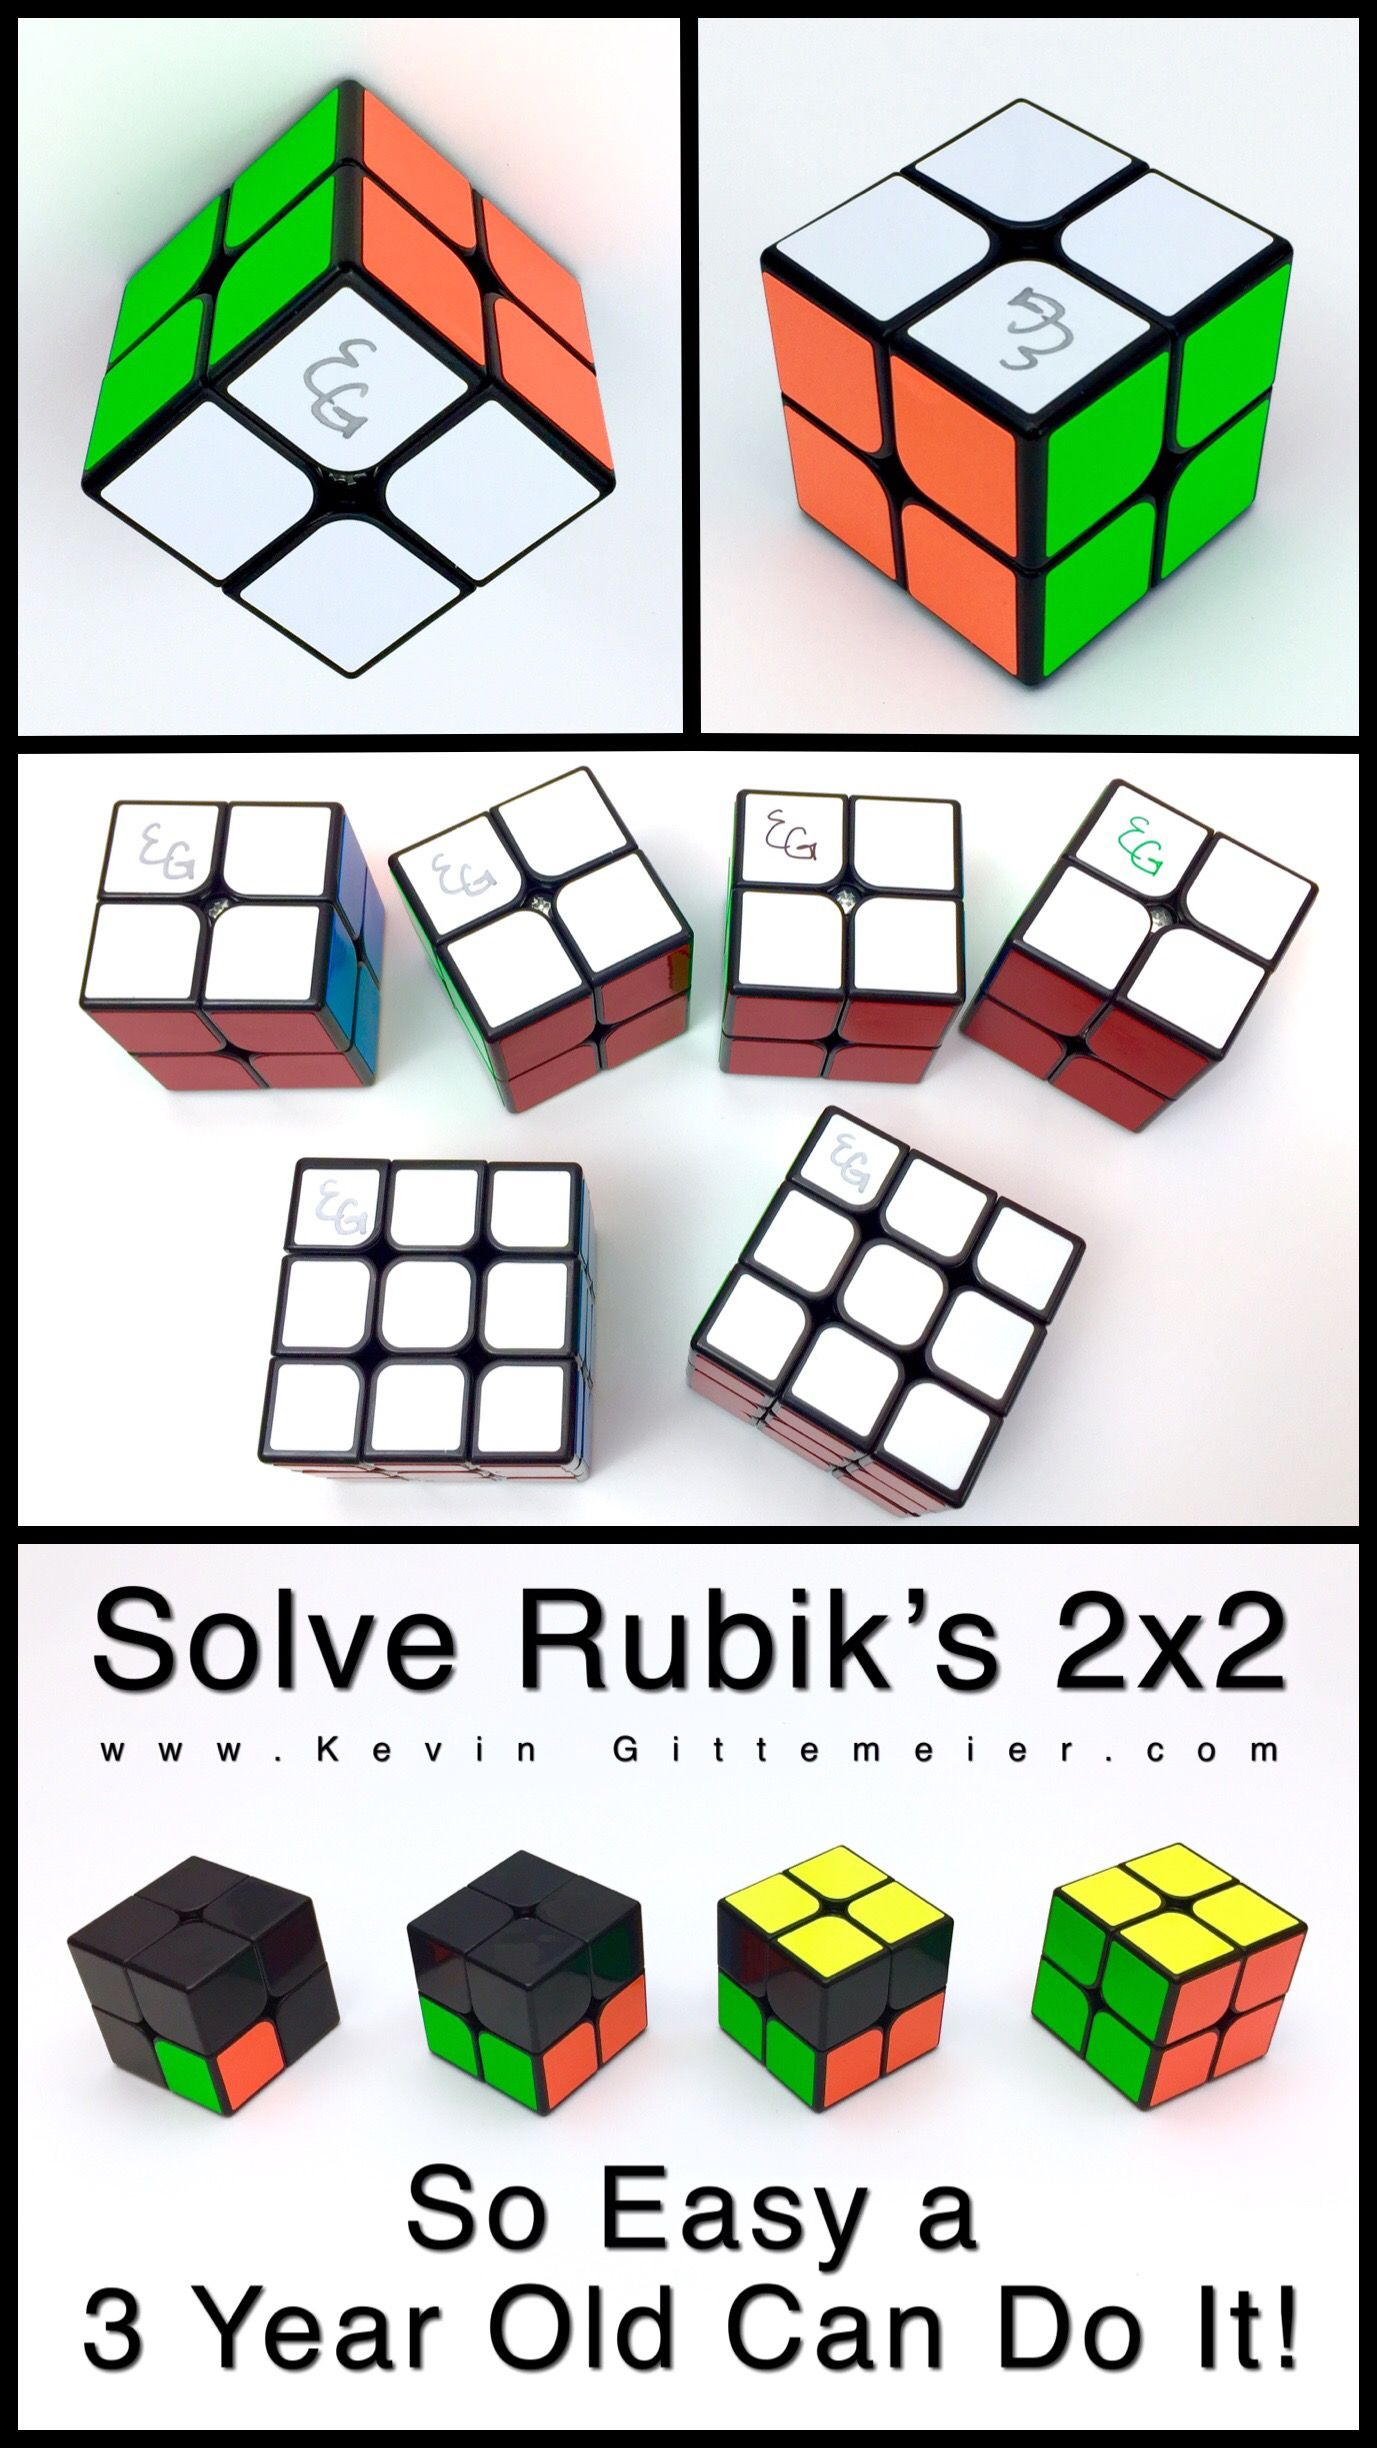 How To Solve 2x2 Rubik S Cube Easy Tutorial Rubiks Cube 2x2 Rubik S Cube Cube